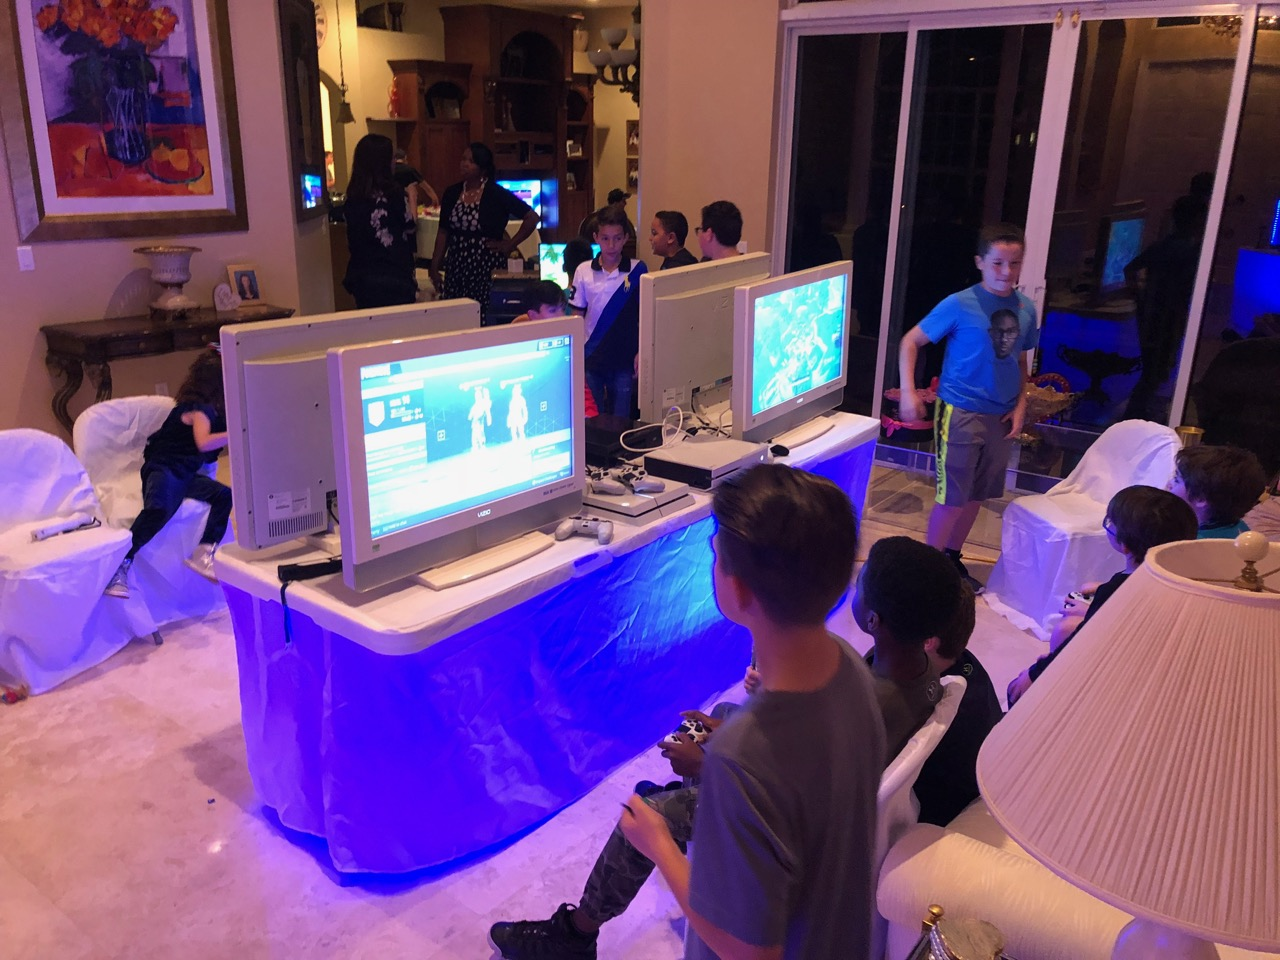 LED Games and arcade Florida Rental - Co